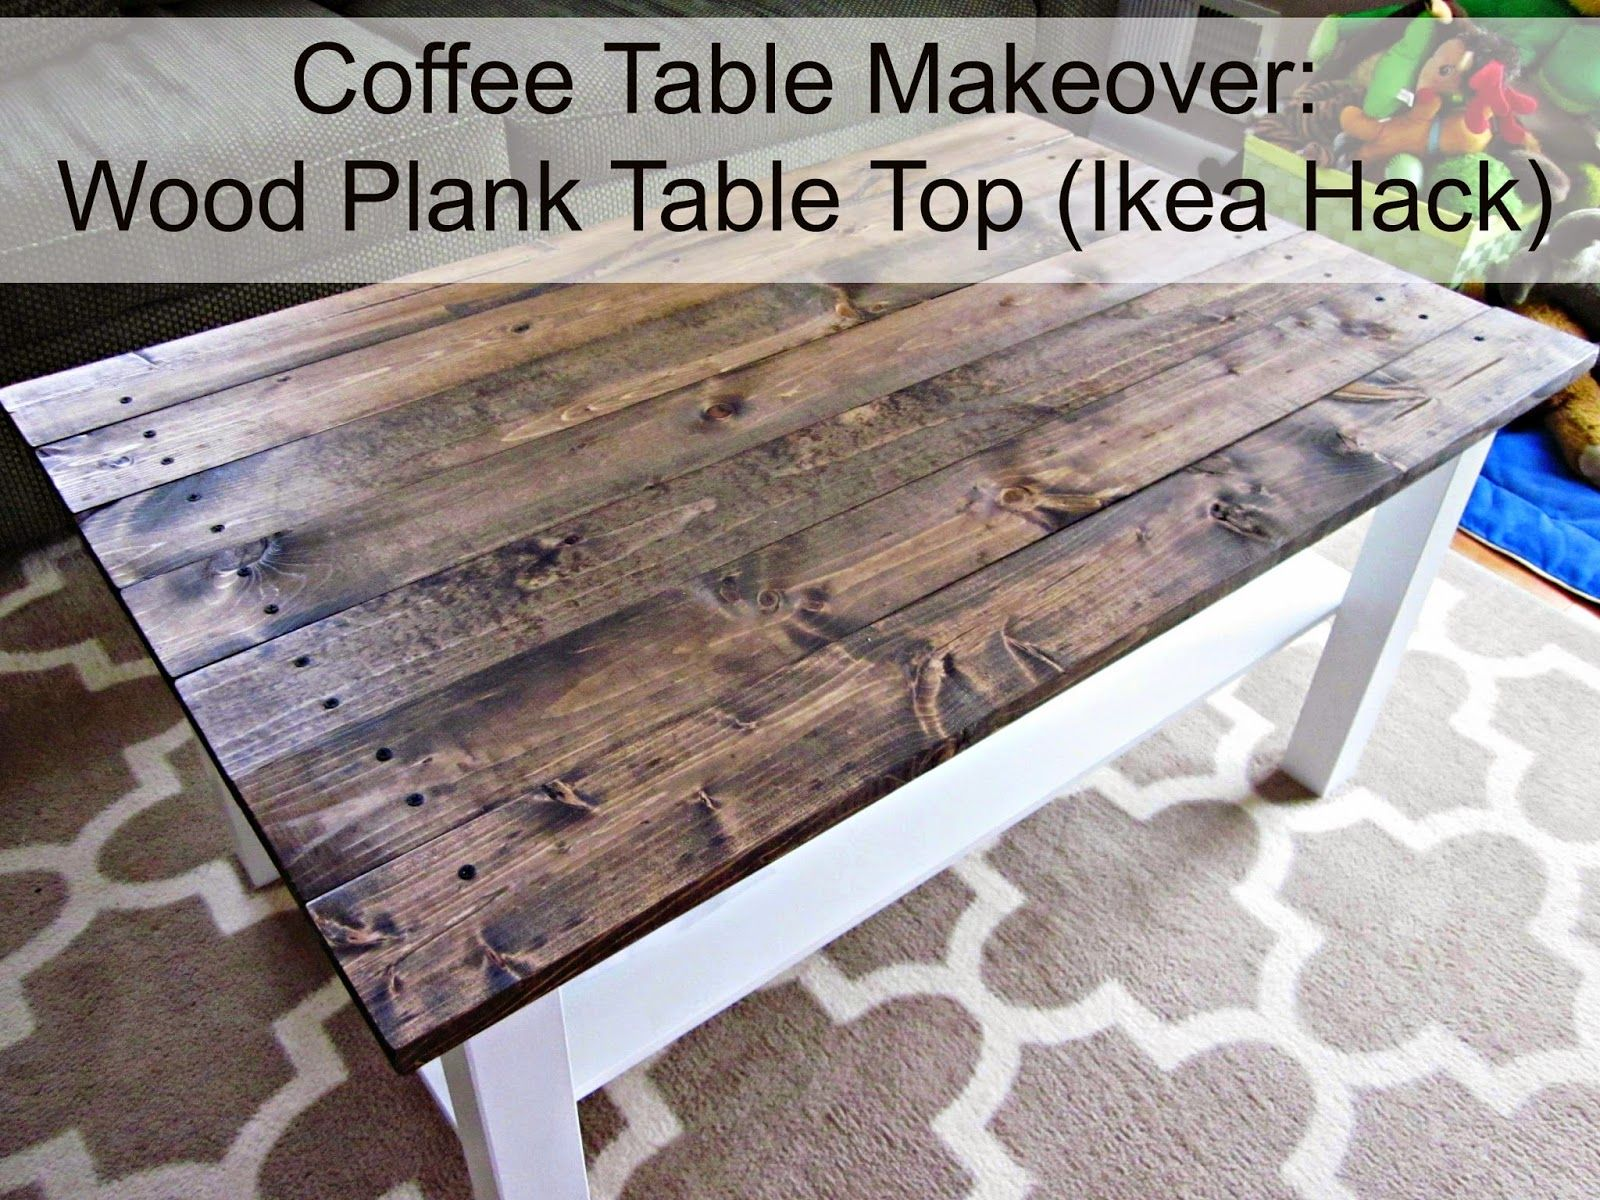 Coffee Table Makeover: Wood Plank Table Top (Ikea Hack) | This Crazy Thing